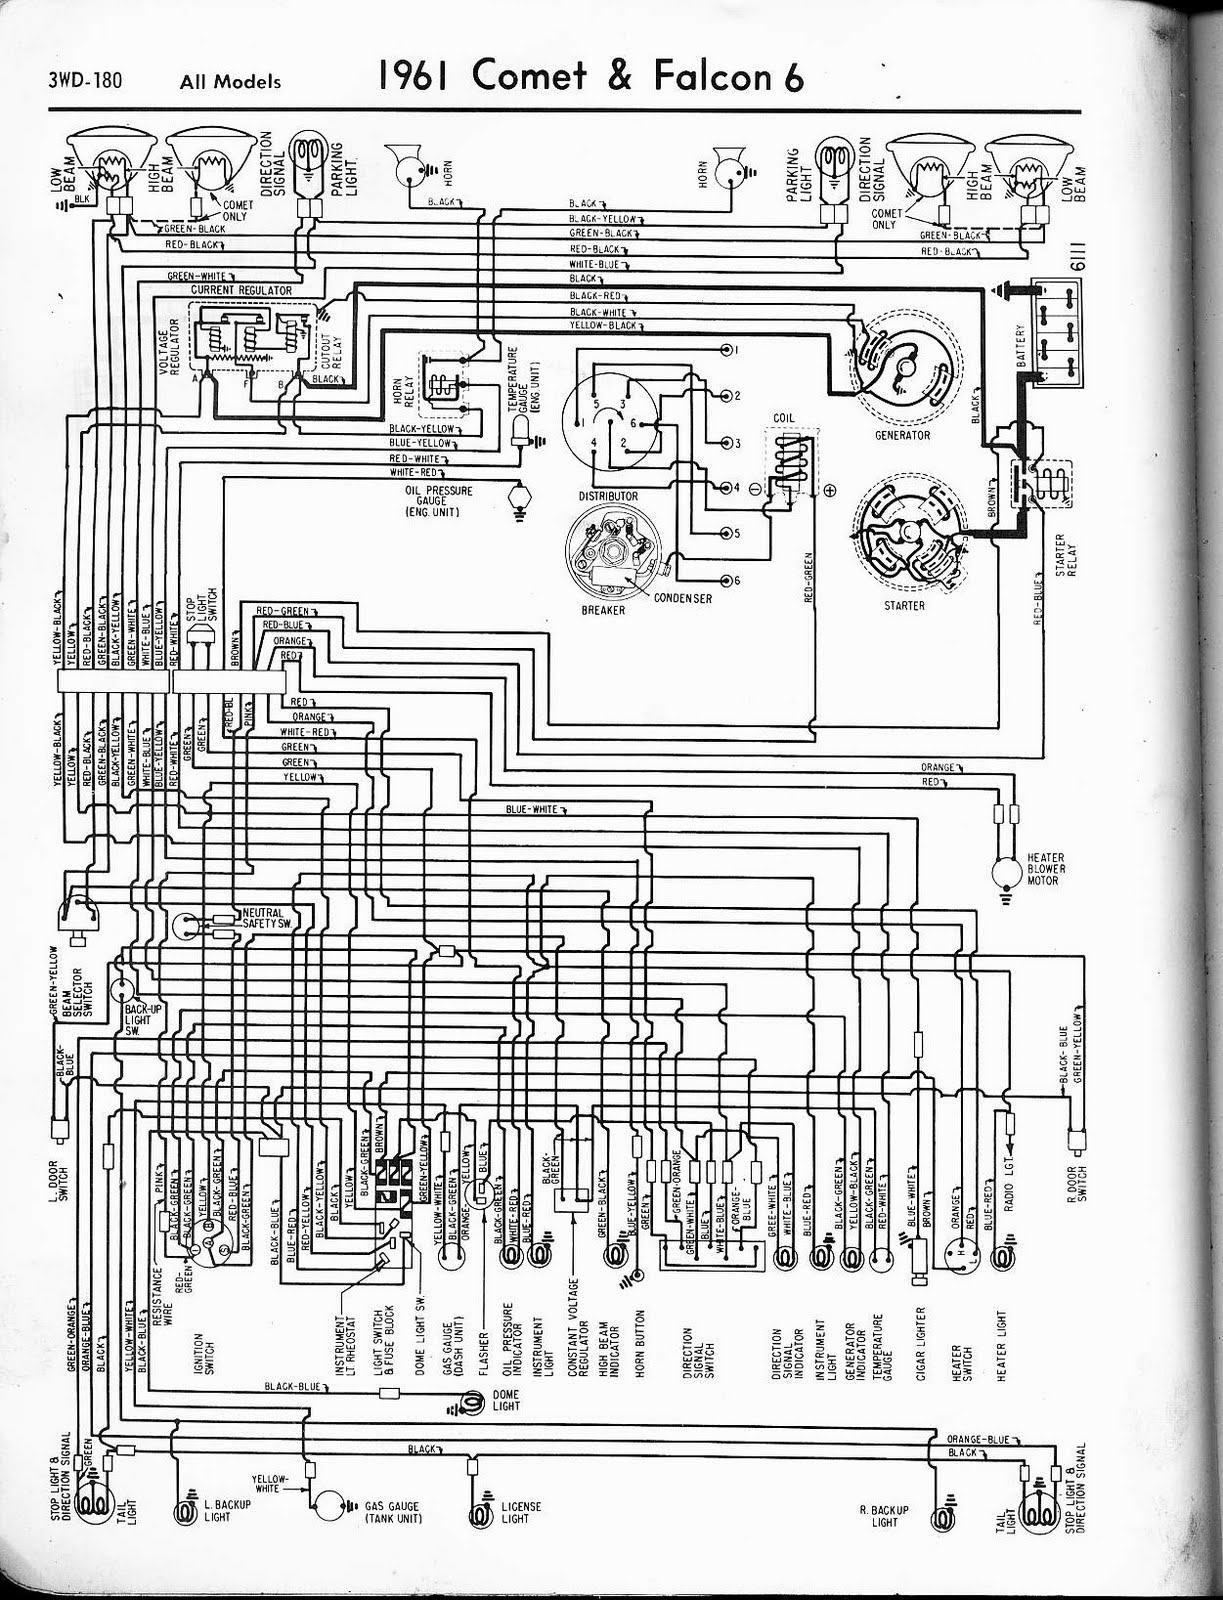 [SCHEMATICS_48ZD]  BA69A16 Au Ford Falcon Wiring Diagram Free Download | Wiring Library | Free Download Lace Sensor Wiring Schematics |  | Wiring Library